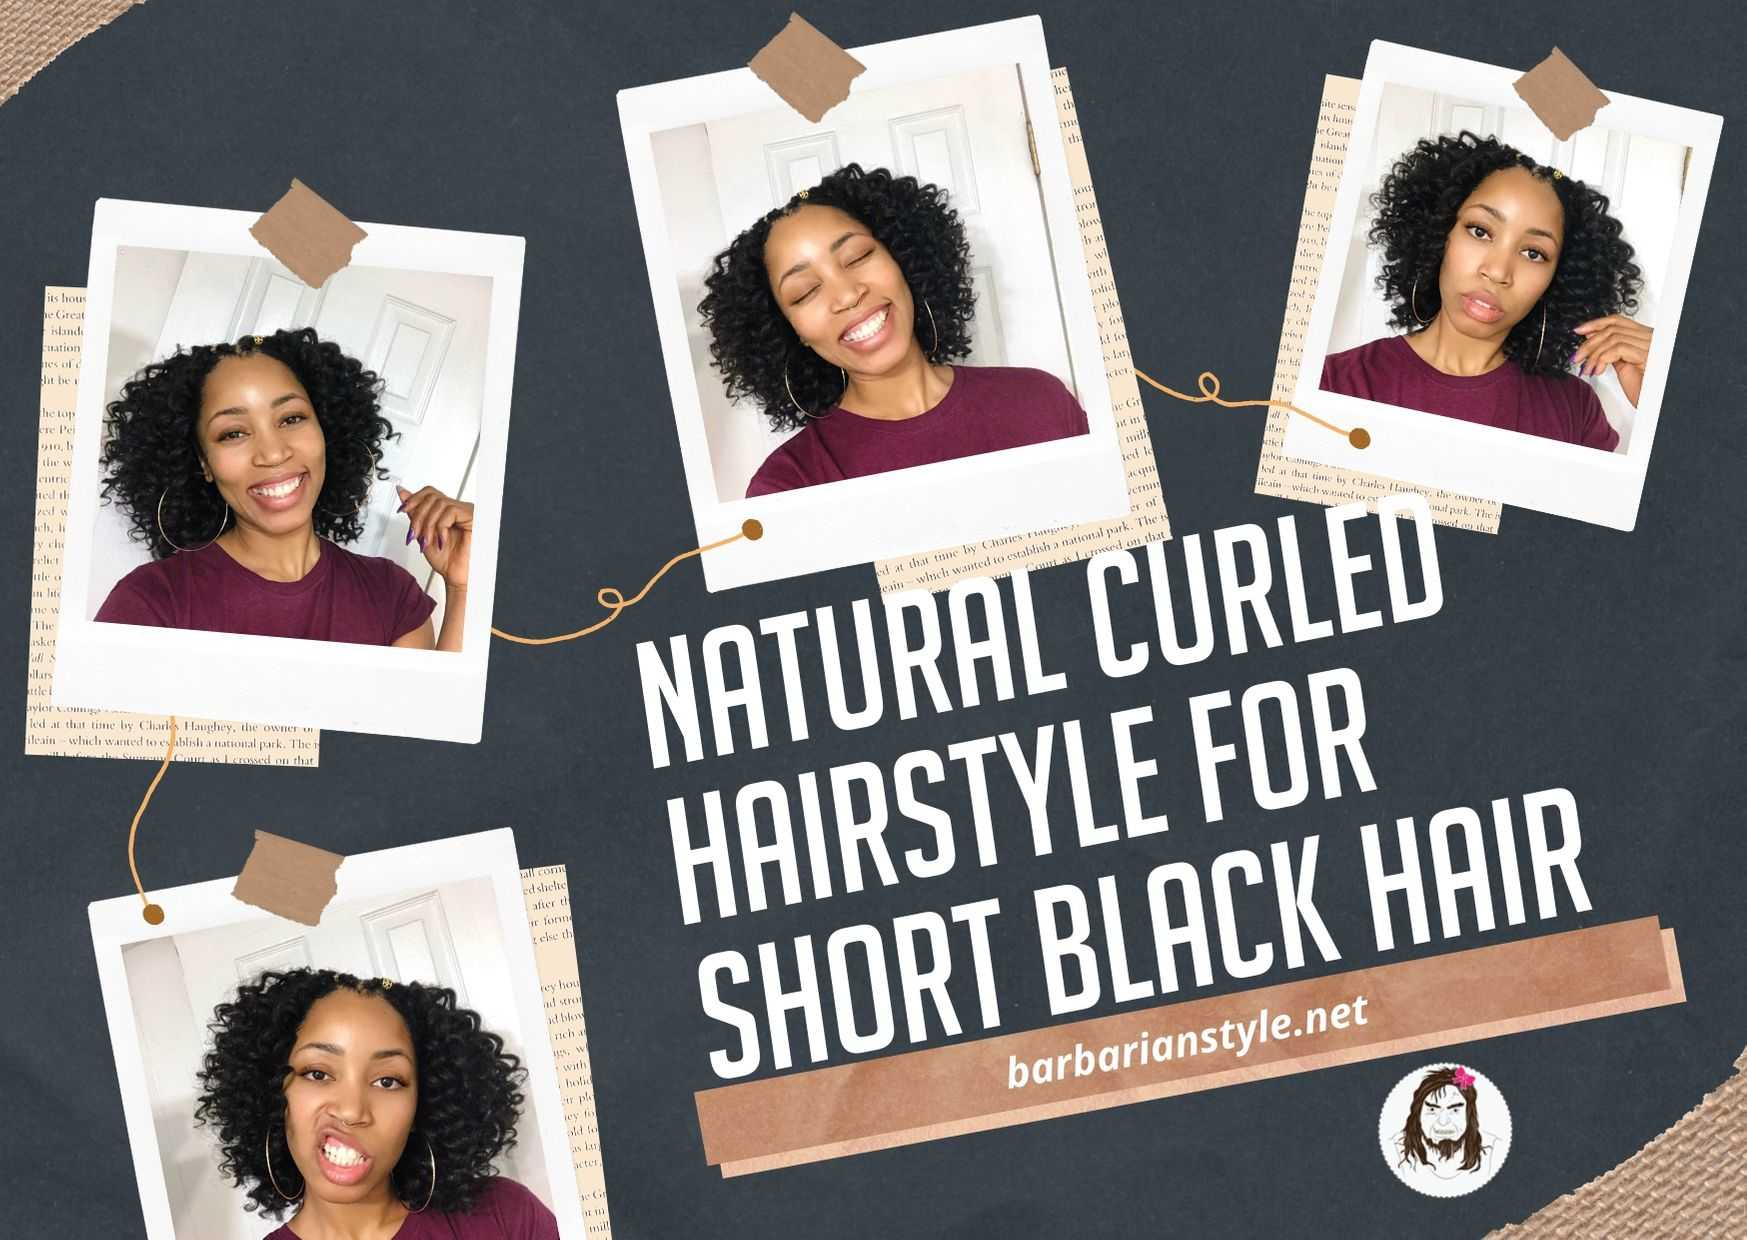 natural curled hairstyle for short black hair